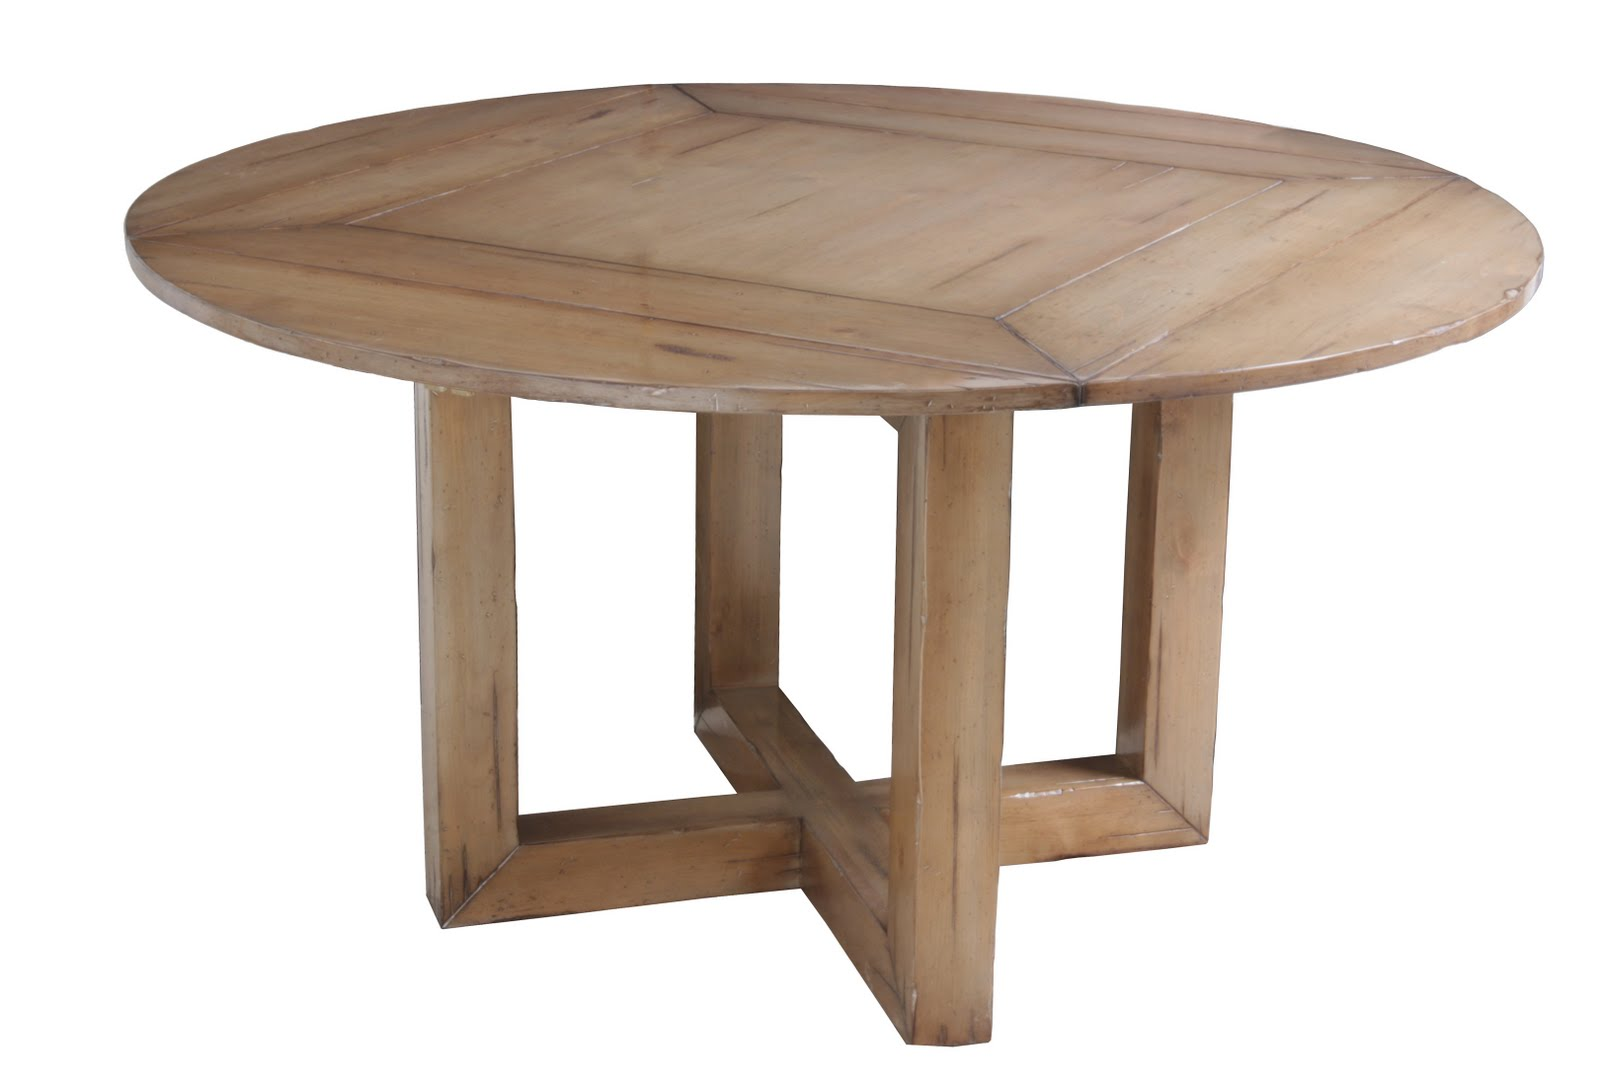 Square Type Of Legs Table (View 9 of 10)